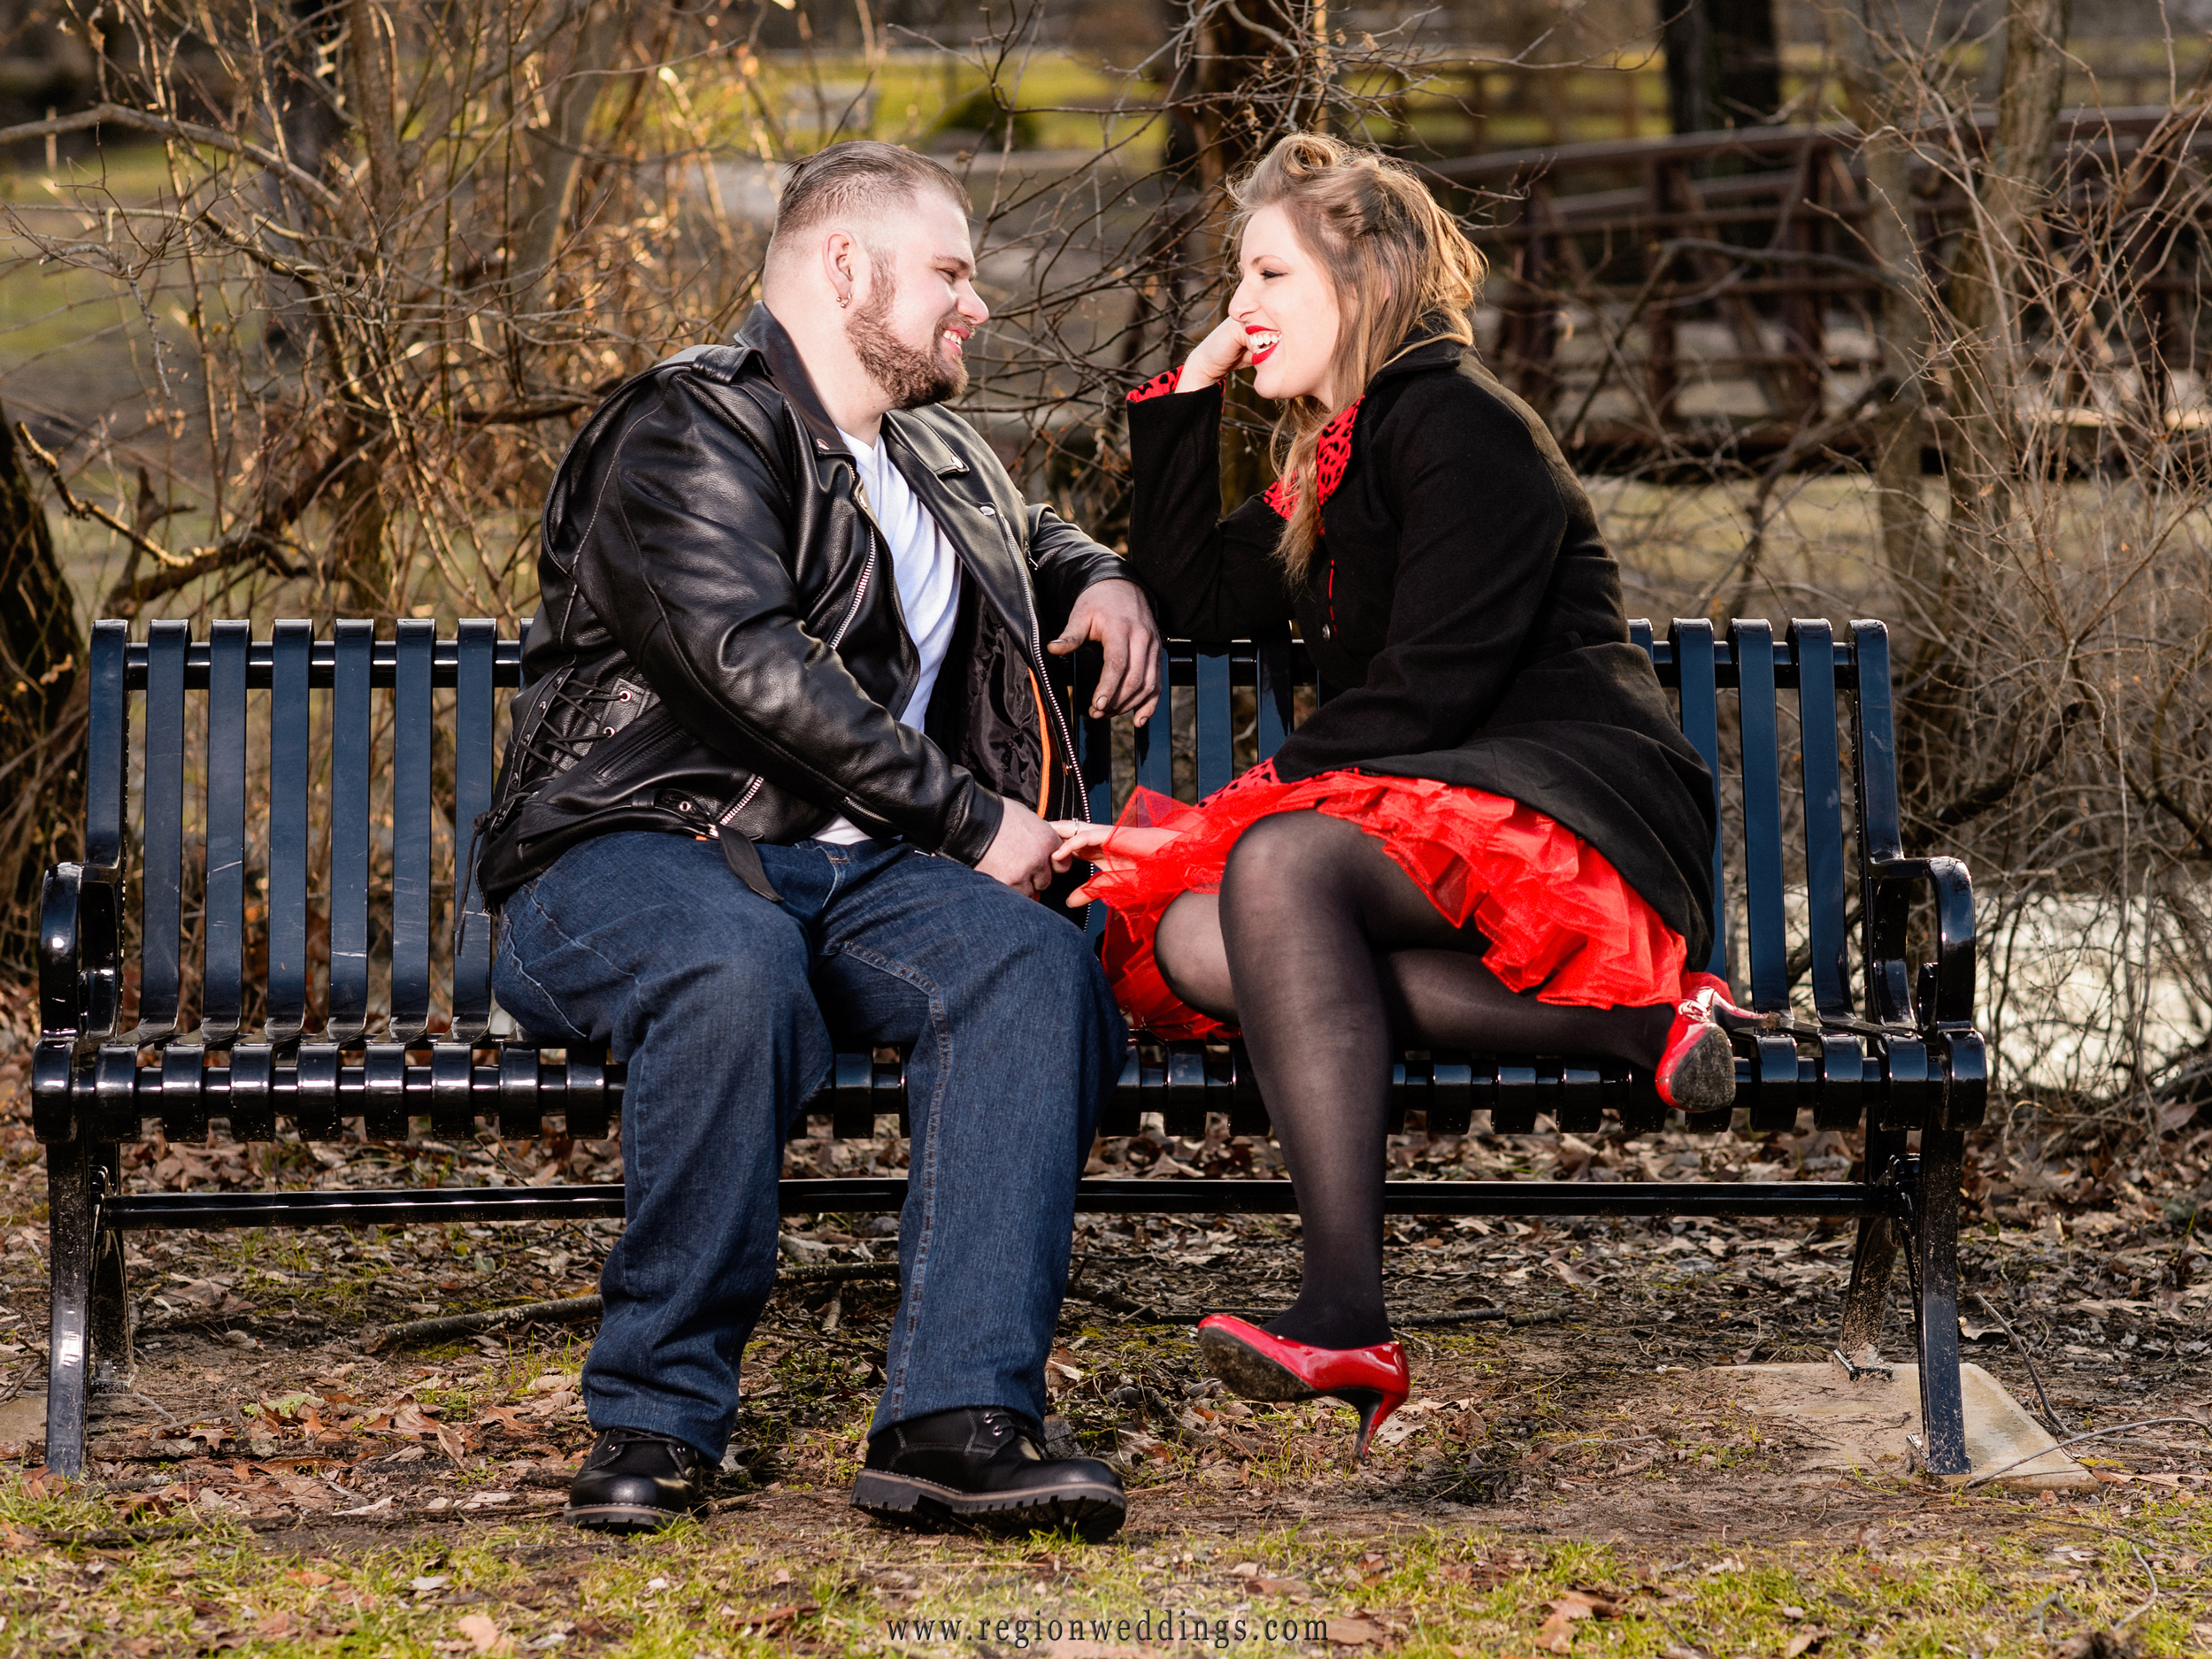 A fun moment on a park bench during a winter engagement session.